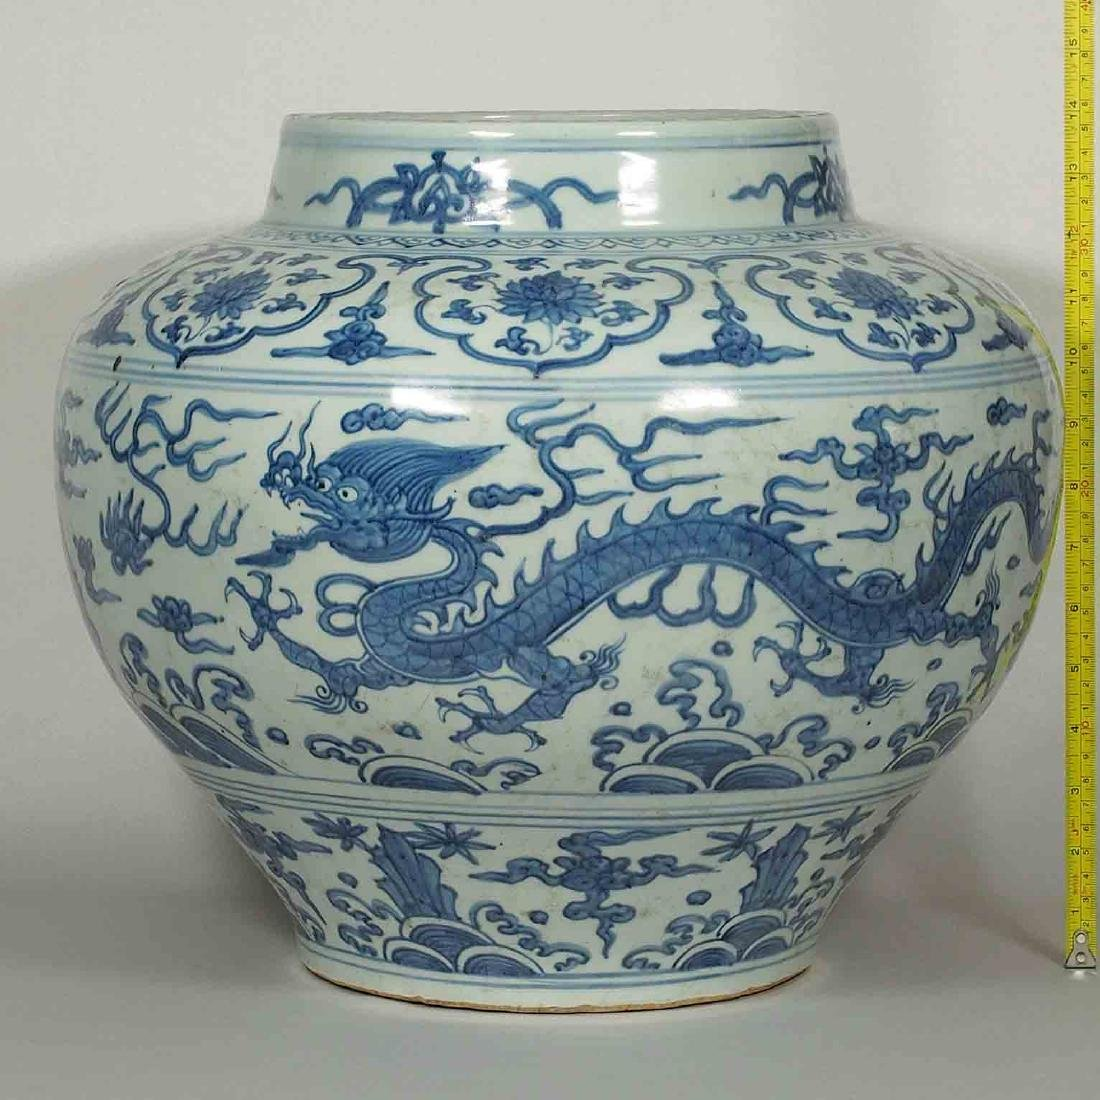 Massive Jar with Two Dragons Design, 15th Century Ming - 9